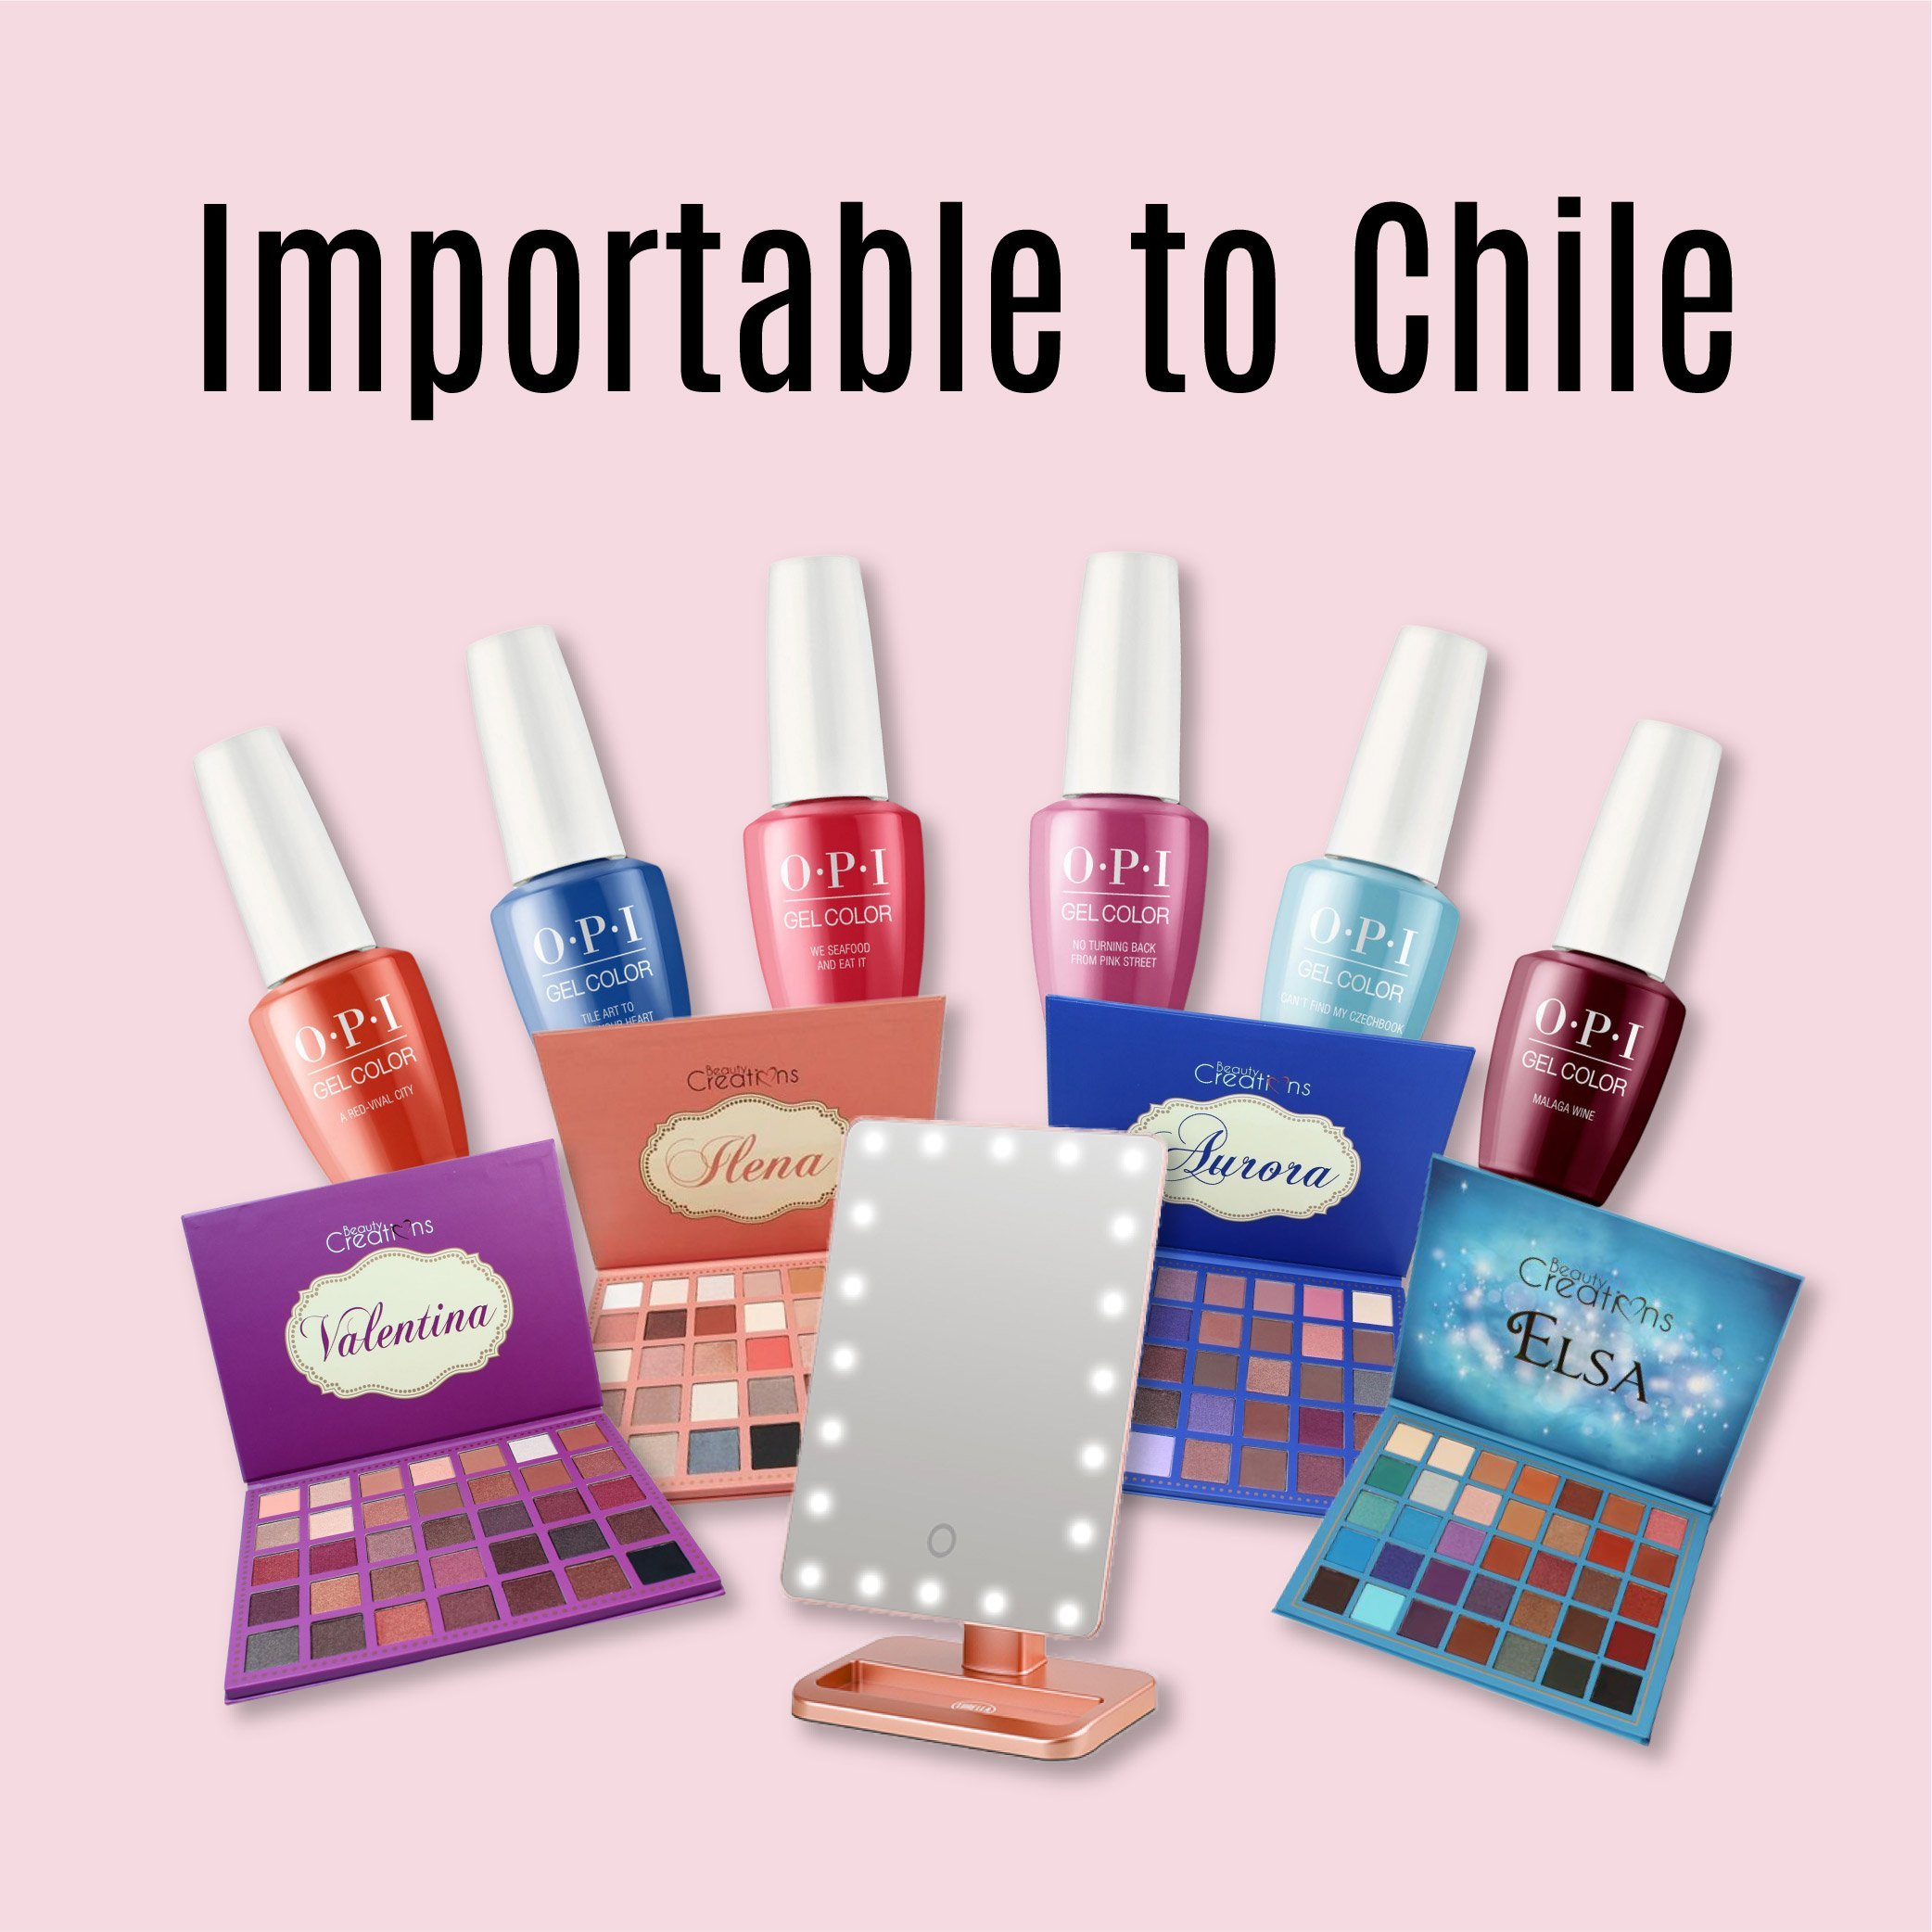 A collection of OPI nail products and Beauty Creations makeup palettes with the text Importable to Chile on the top